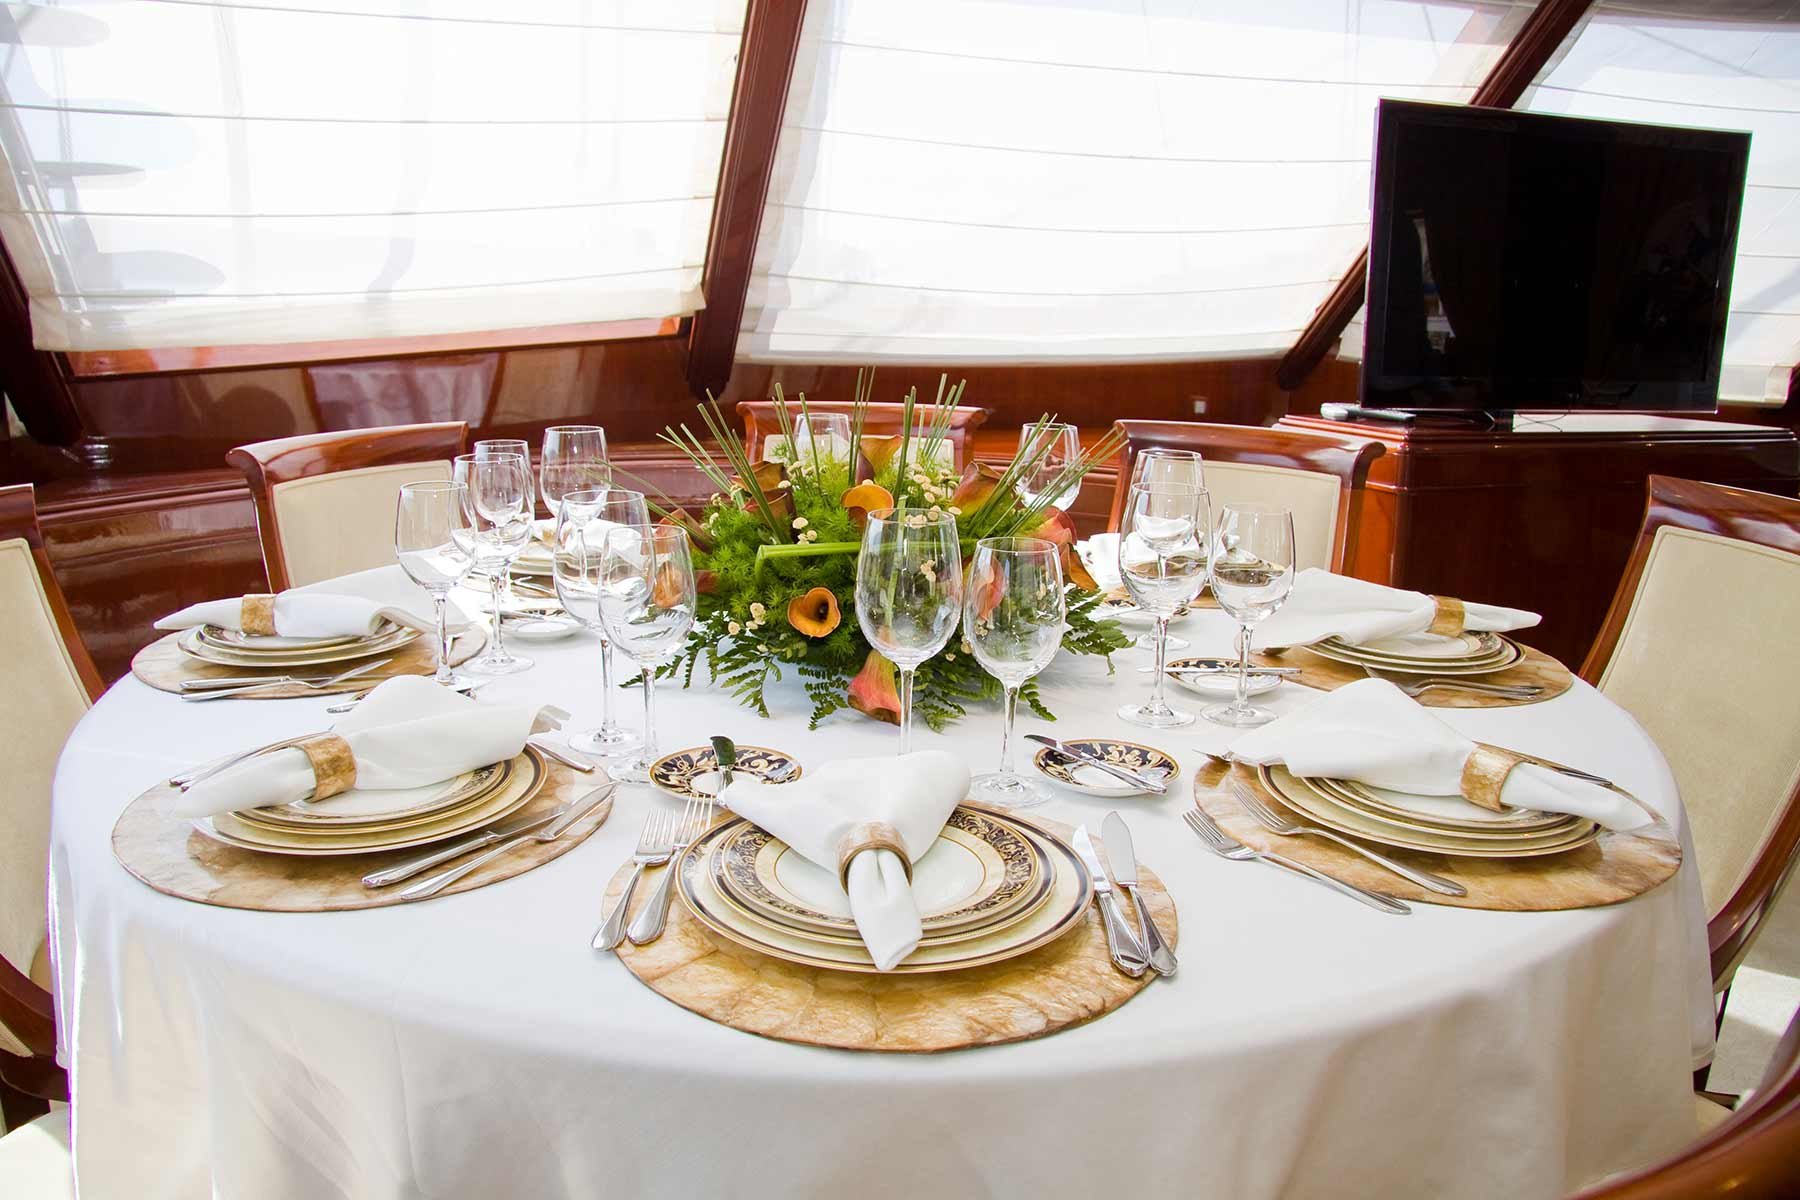 Bespoke dining service private luxury super yacht